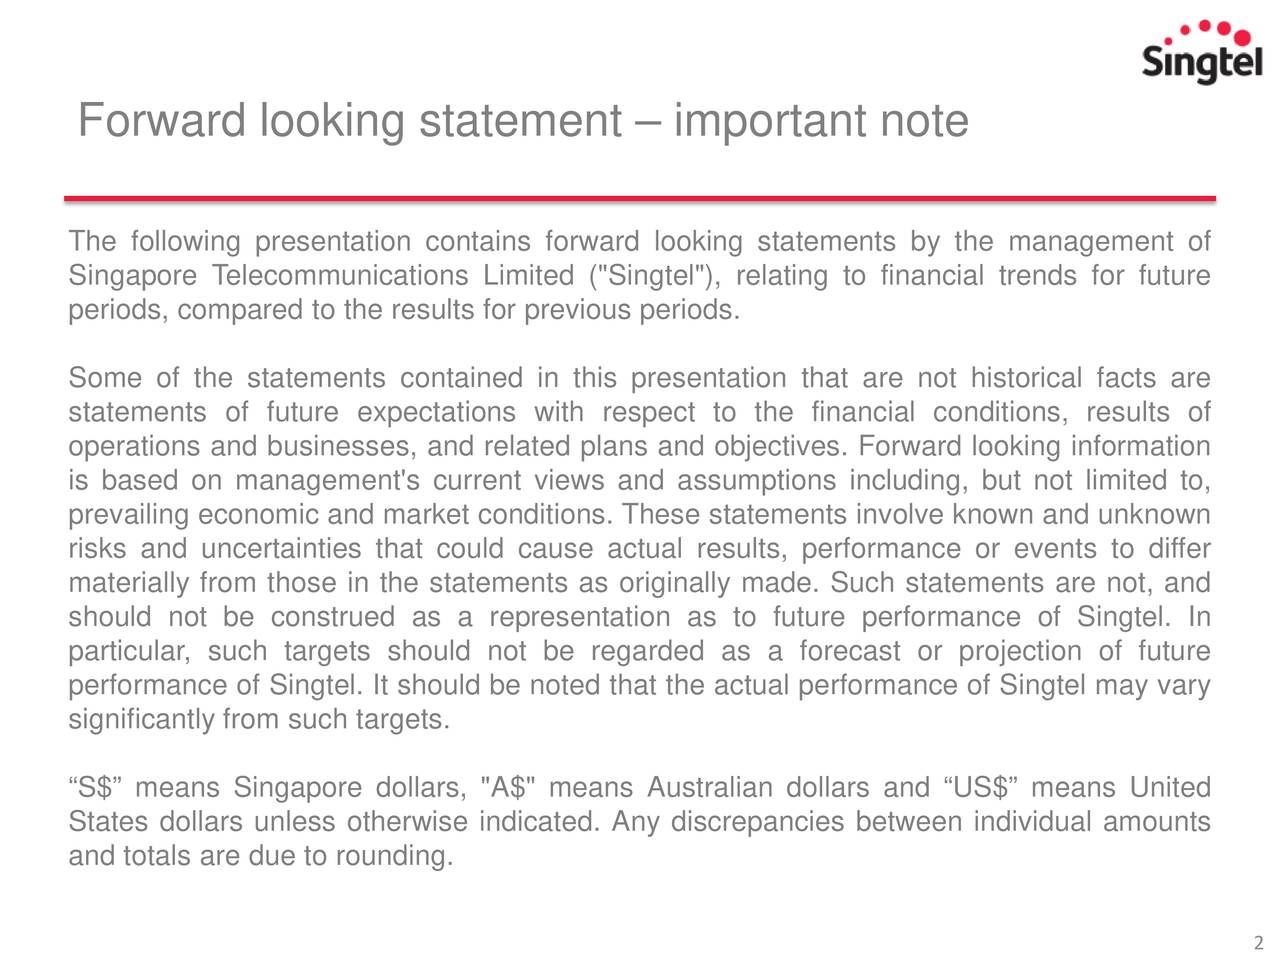 """The following presentation contains forward looking statements by the management of Singapore Telecommunications Limited (""""Singtel""""), relating to financial trends for future periods, compared to the results for previous periods. Some of the statements contained in this presentation that are not historical facts are statements of future expectations with respect to the financial conditions, results of operations and businesses, and related plans and objectives. Forward looking information is based on management's current views and assumptions including, but not limited to, prevailing economic and market conditions. These statements involve known and unknown risks and uncertainties that could cause actual results, performance or events to differ materially from those in the statements as originally made. Such statements are not, and should not be construed as a representation as to future performance of Singtel. In particular, such targets should not be regarded as a forecast or projection of future performance of Singtel. It should be noted that the actual performance of Singtel may vary significantly from such targets. S$ means Singapore dollars, """"A$"""" means Australian dollars and US$ means United States dollars unless otherwise indicated. Any discrepancies between individual amounts and totals are due to rounding."""